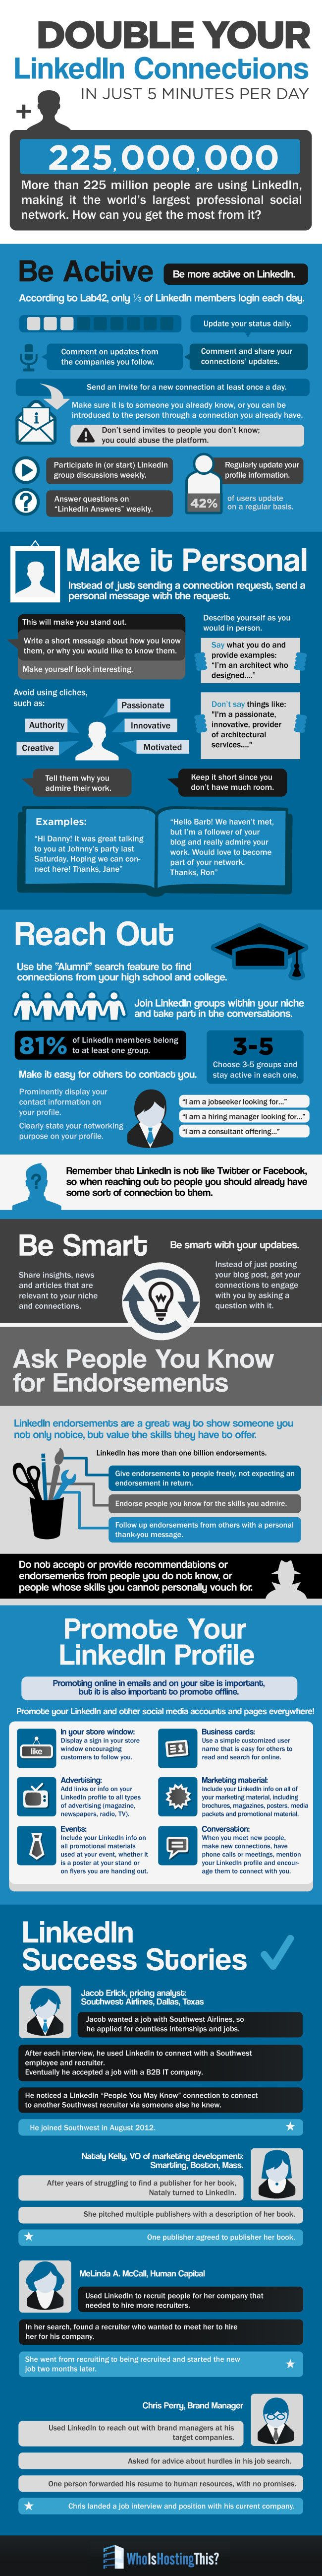 Follow up endorsements from others with a personal thank-you message. Don't accept or provide recommendations from people you do not know, o...